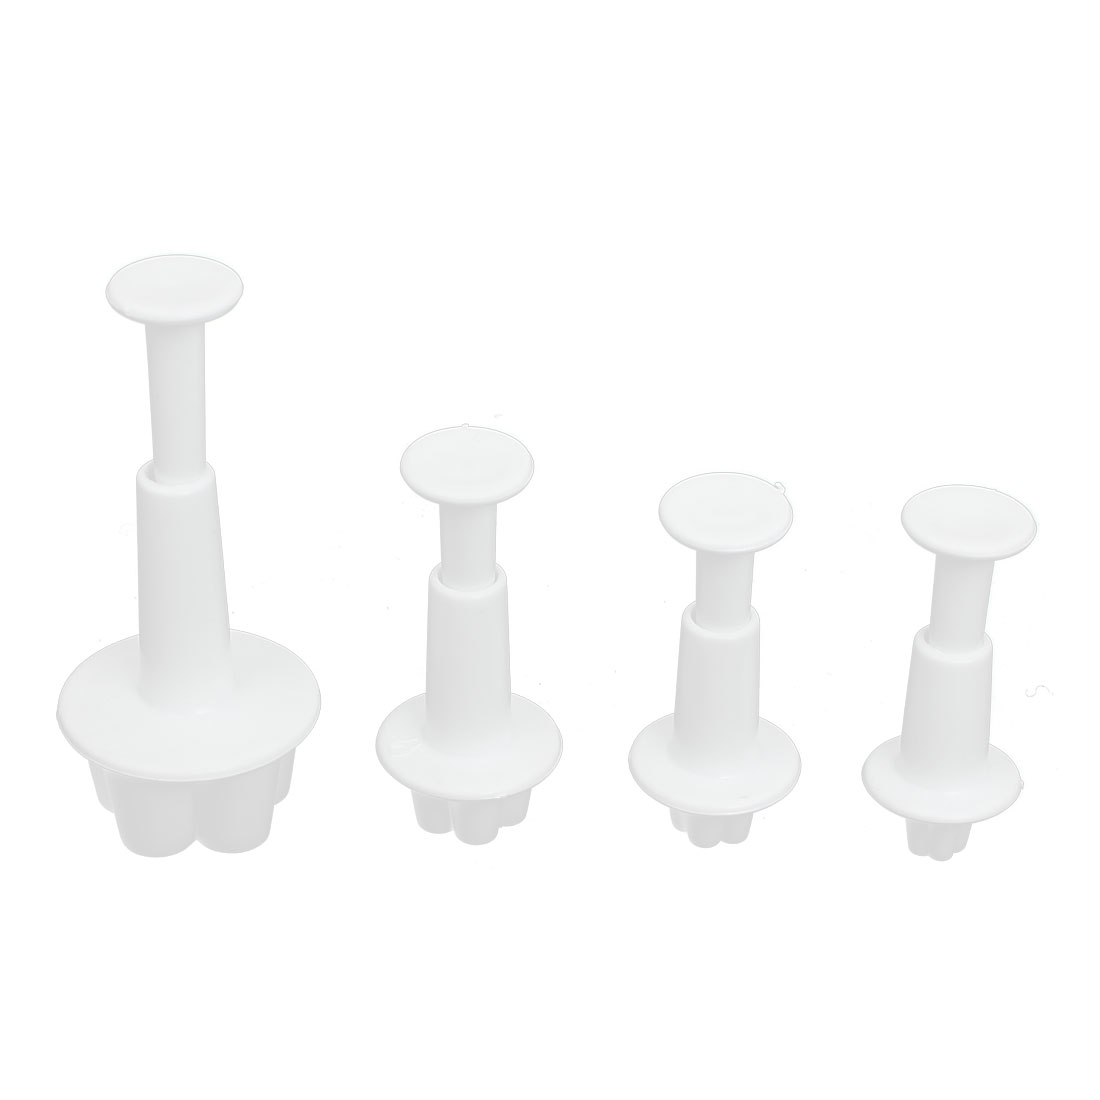 4Pcs Flower Shape Fondant Cake Decorating Mold Sugarcraft Plunger Cutter Tools